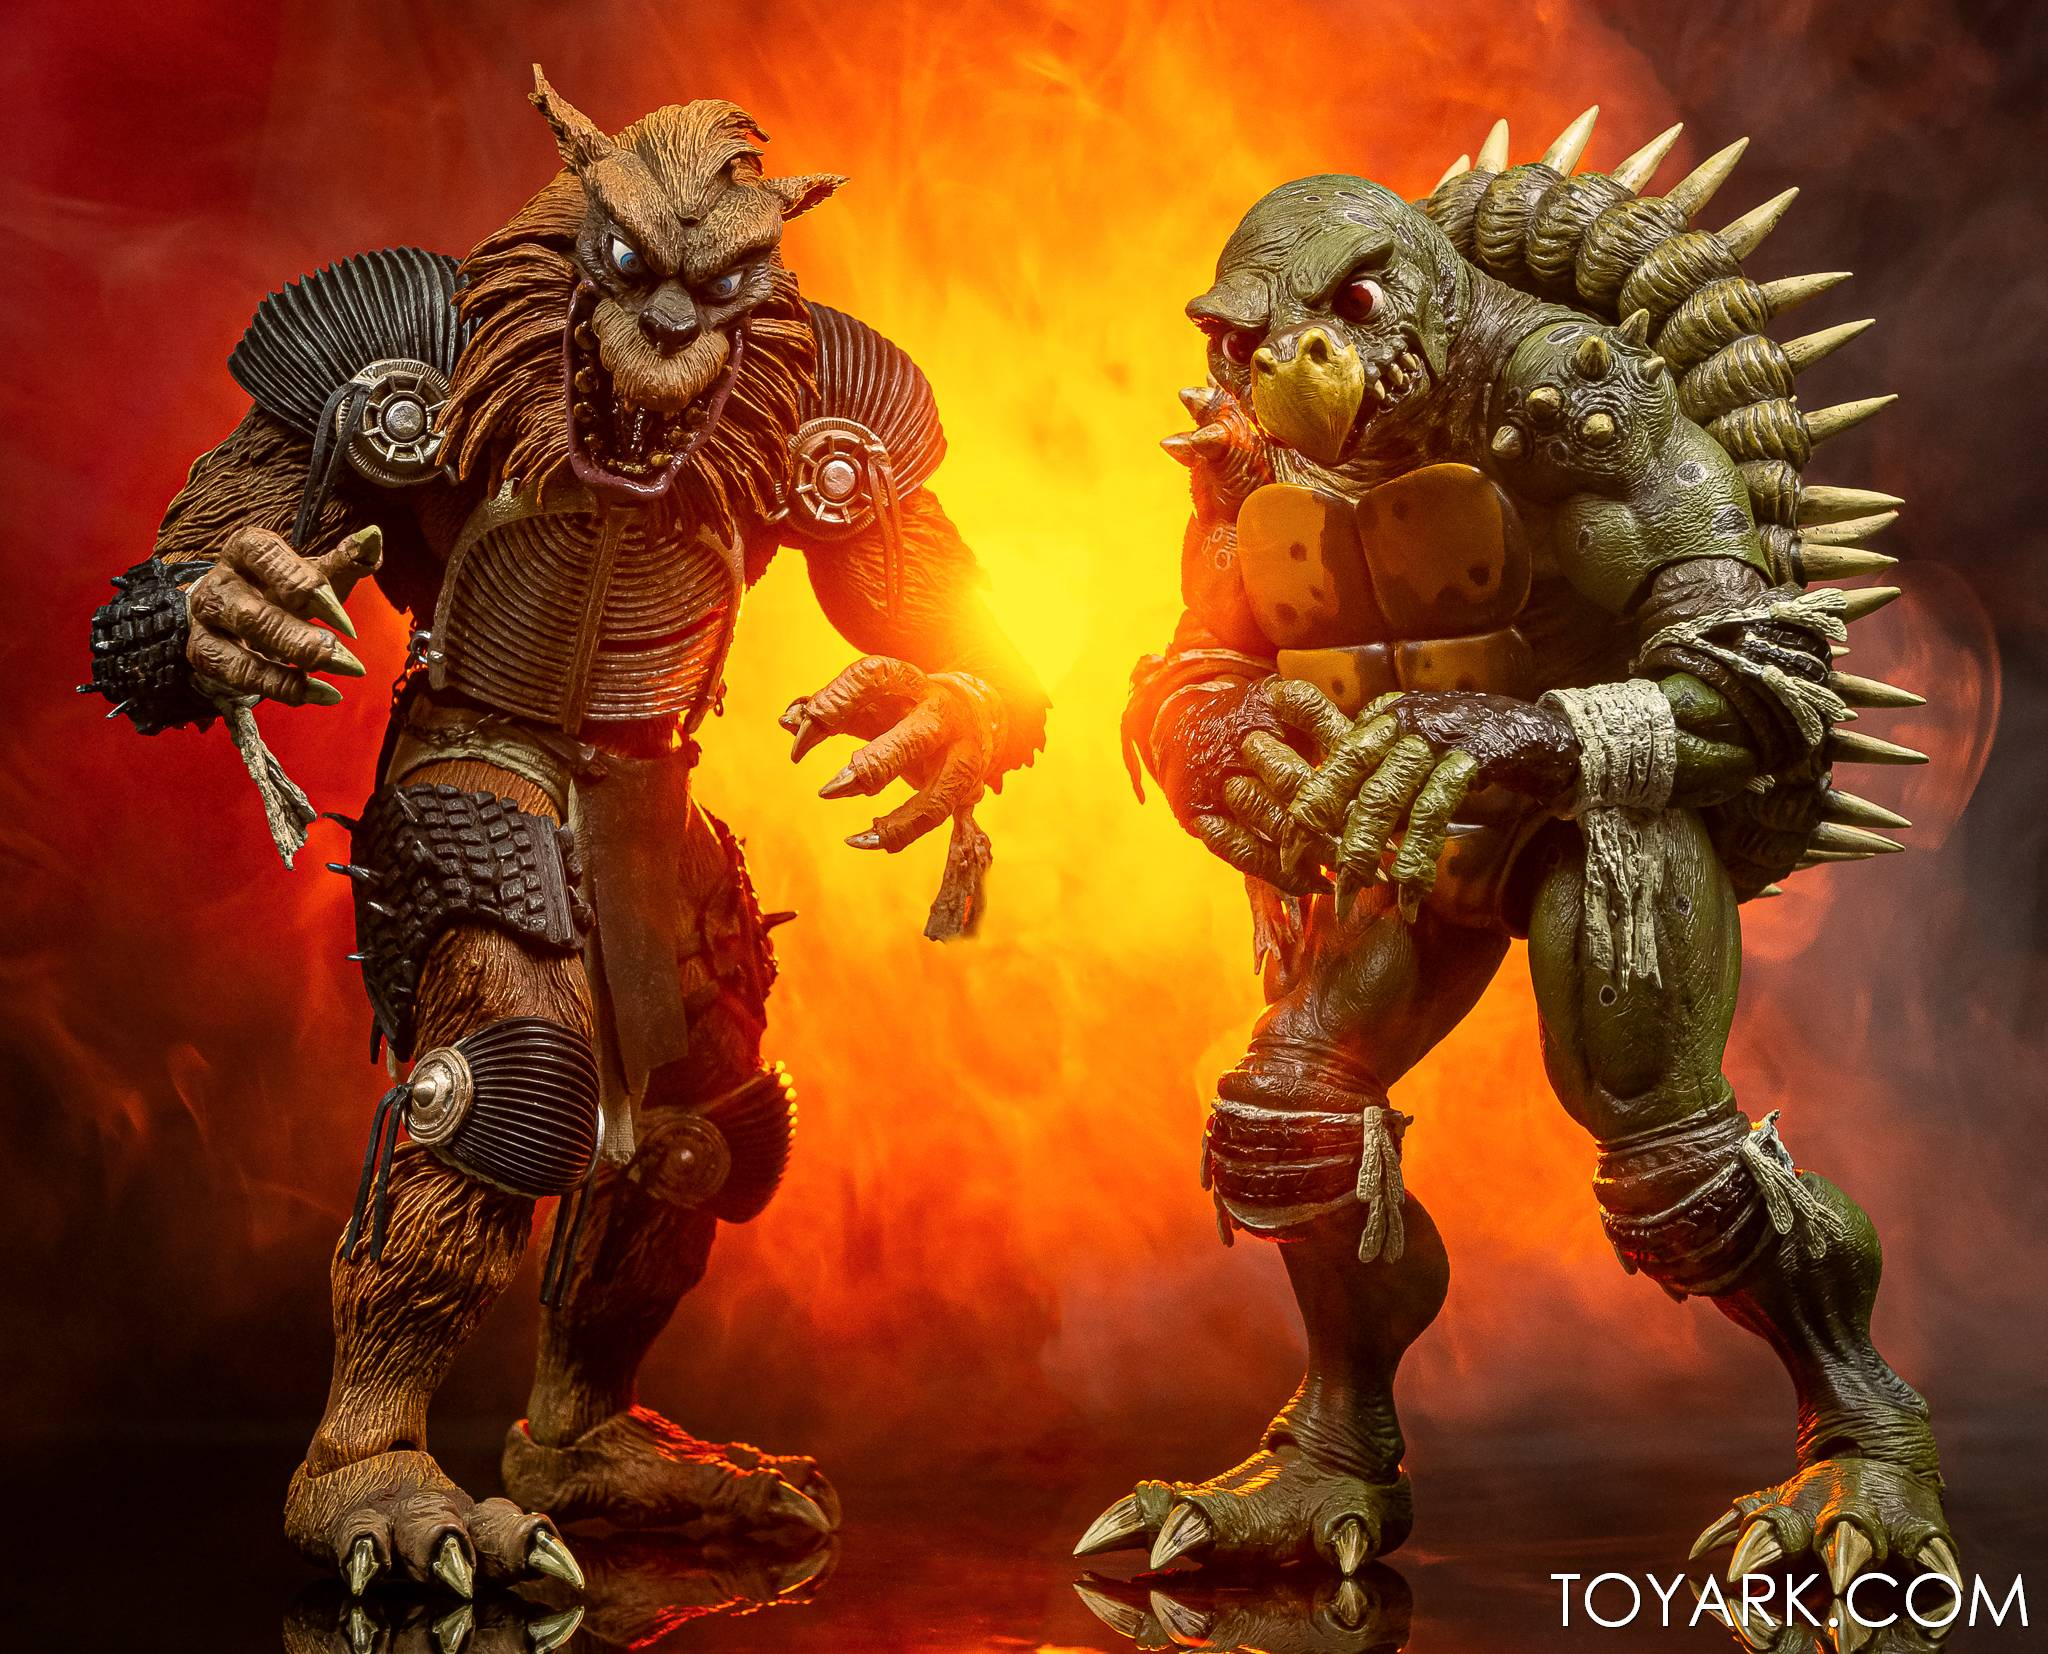 https://news.toyark.com/wp-content/uploads/sites/4/2021/03/NECA-Tokka-and-Rahzar-TMNT-II-045.jpg